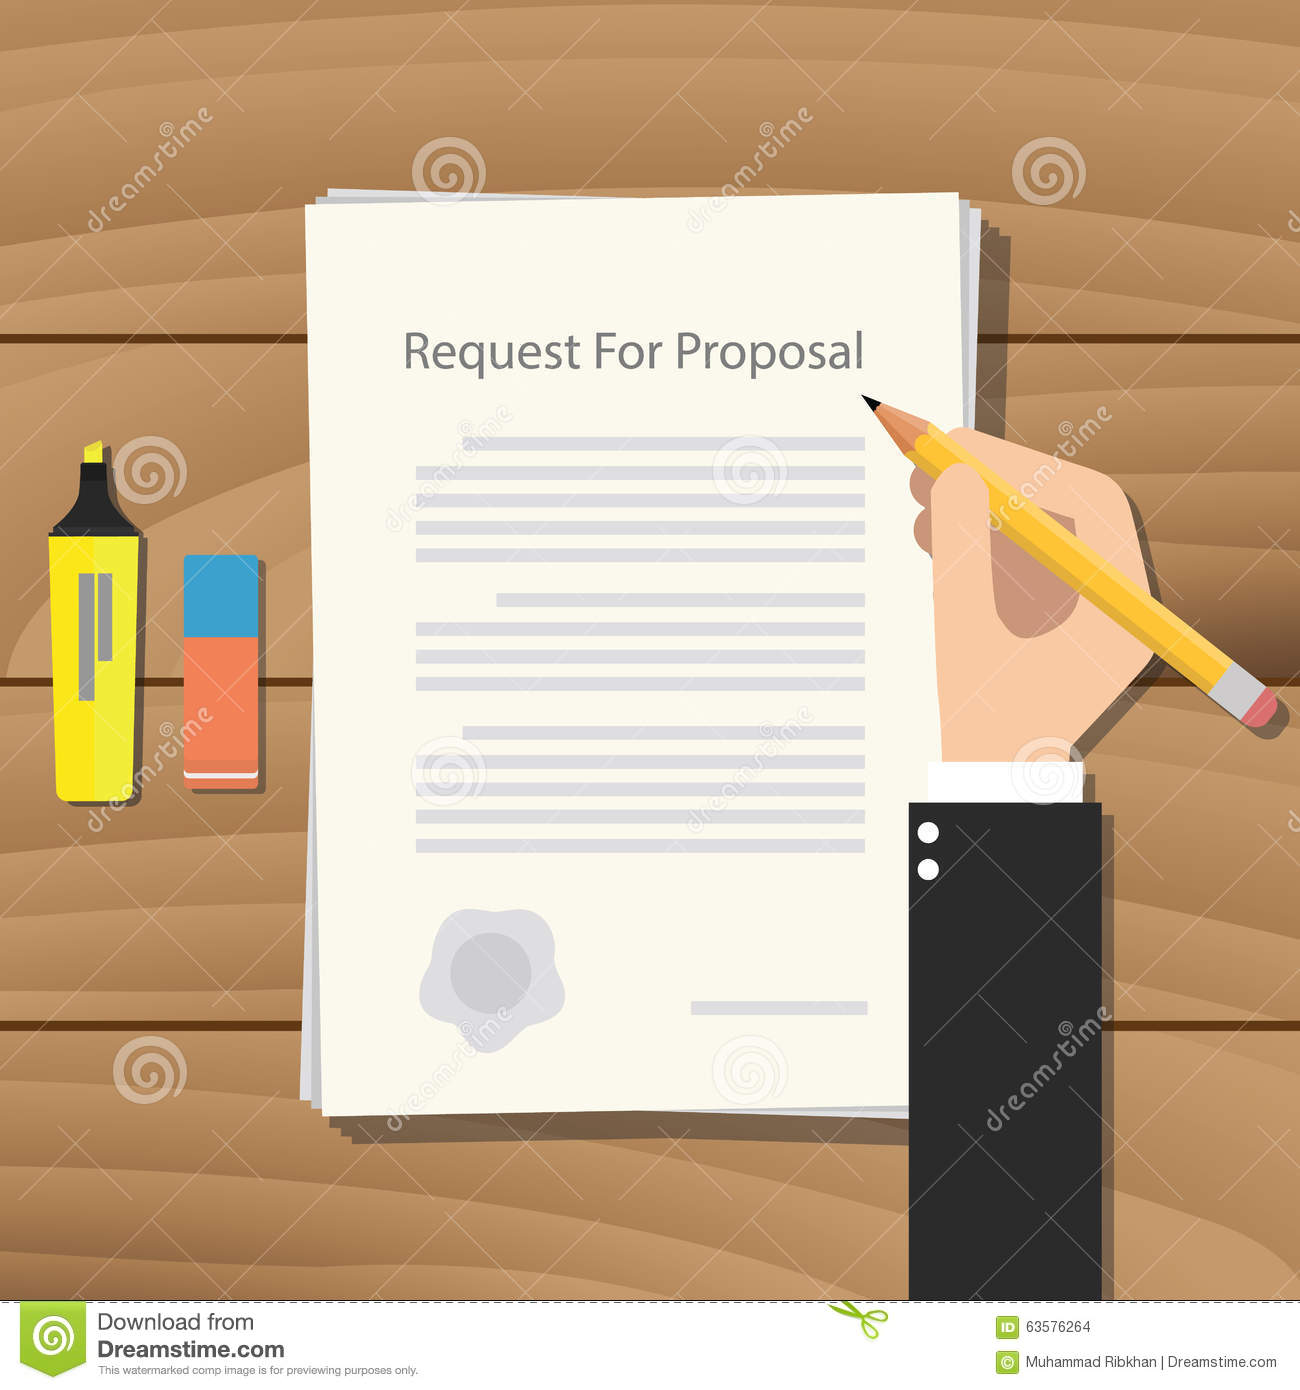 Rfp Request For Proposal Paper Document Stock Vector